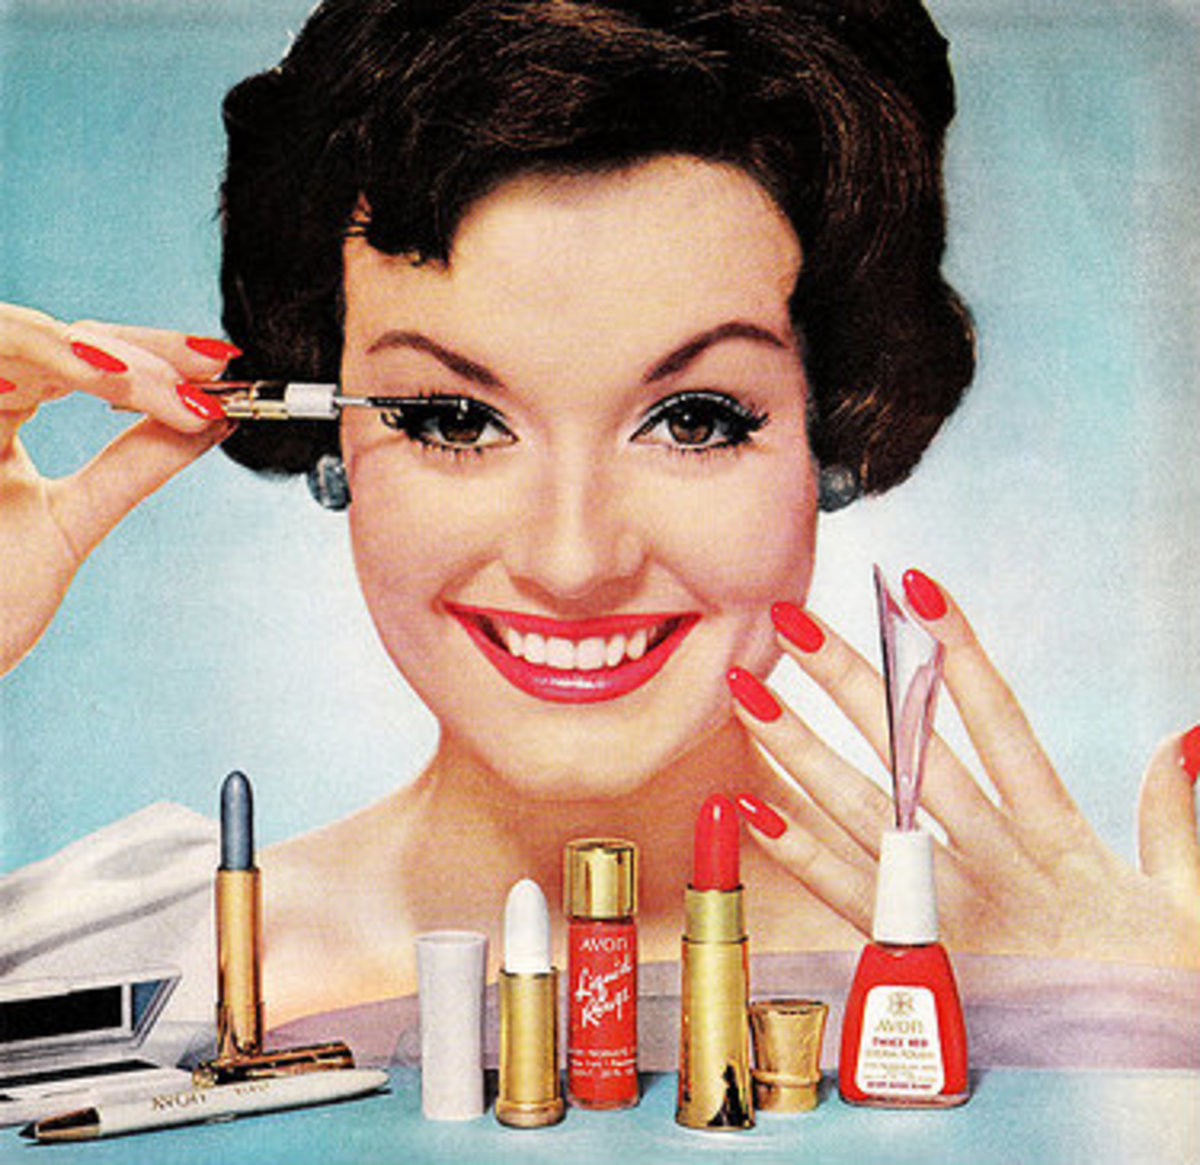 Makeup products could be the cause of an allergic reaction